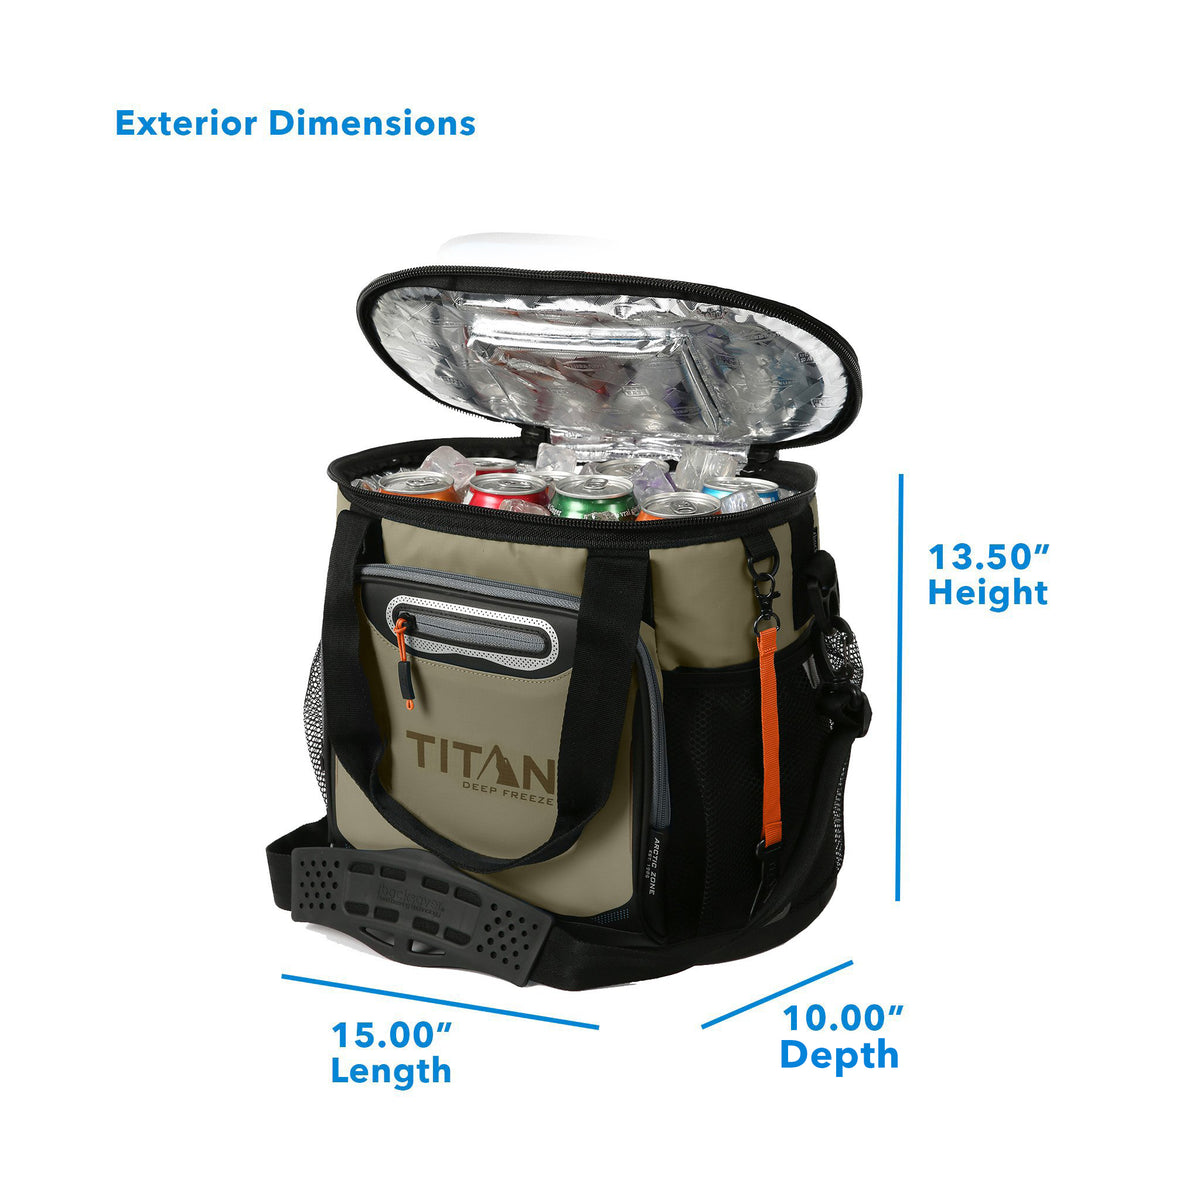 "Titan Deep Freeze® 24 Can Bucket Tote - Tan - Exterior dimensions: (L x D x H) 15.00"" x 10.00"" x 13.50"""